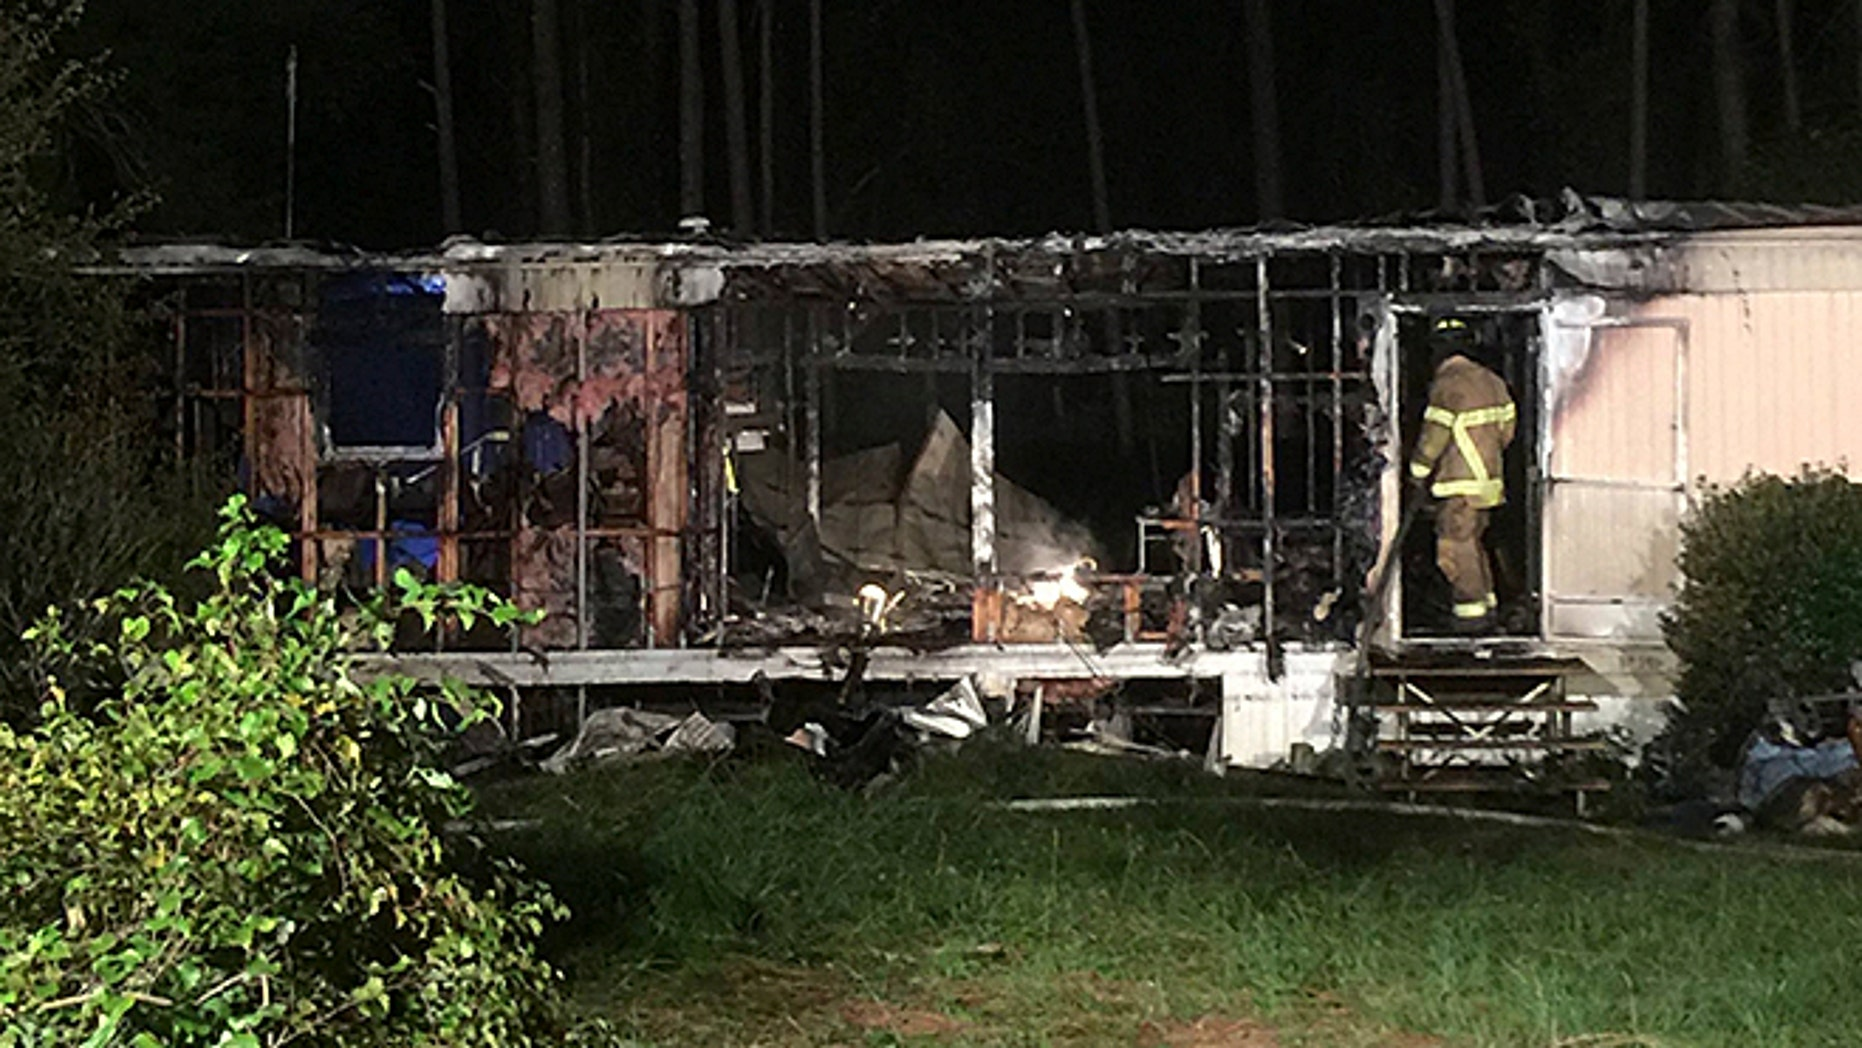 A candle may have started a mobile home fire that claimed the life of a 10-year-old boy in Florida. The home lost power during Hurricane Irma.